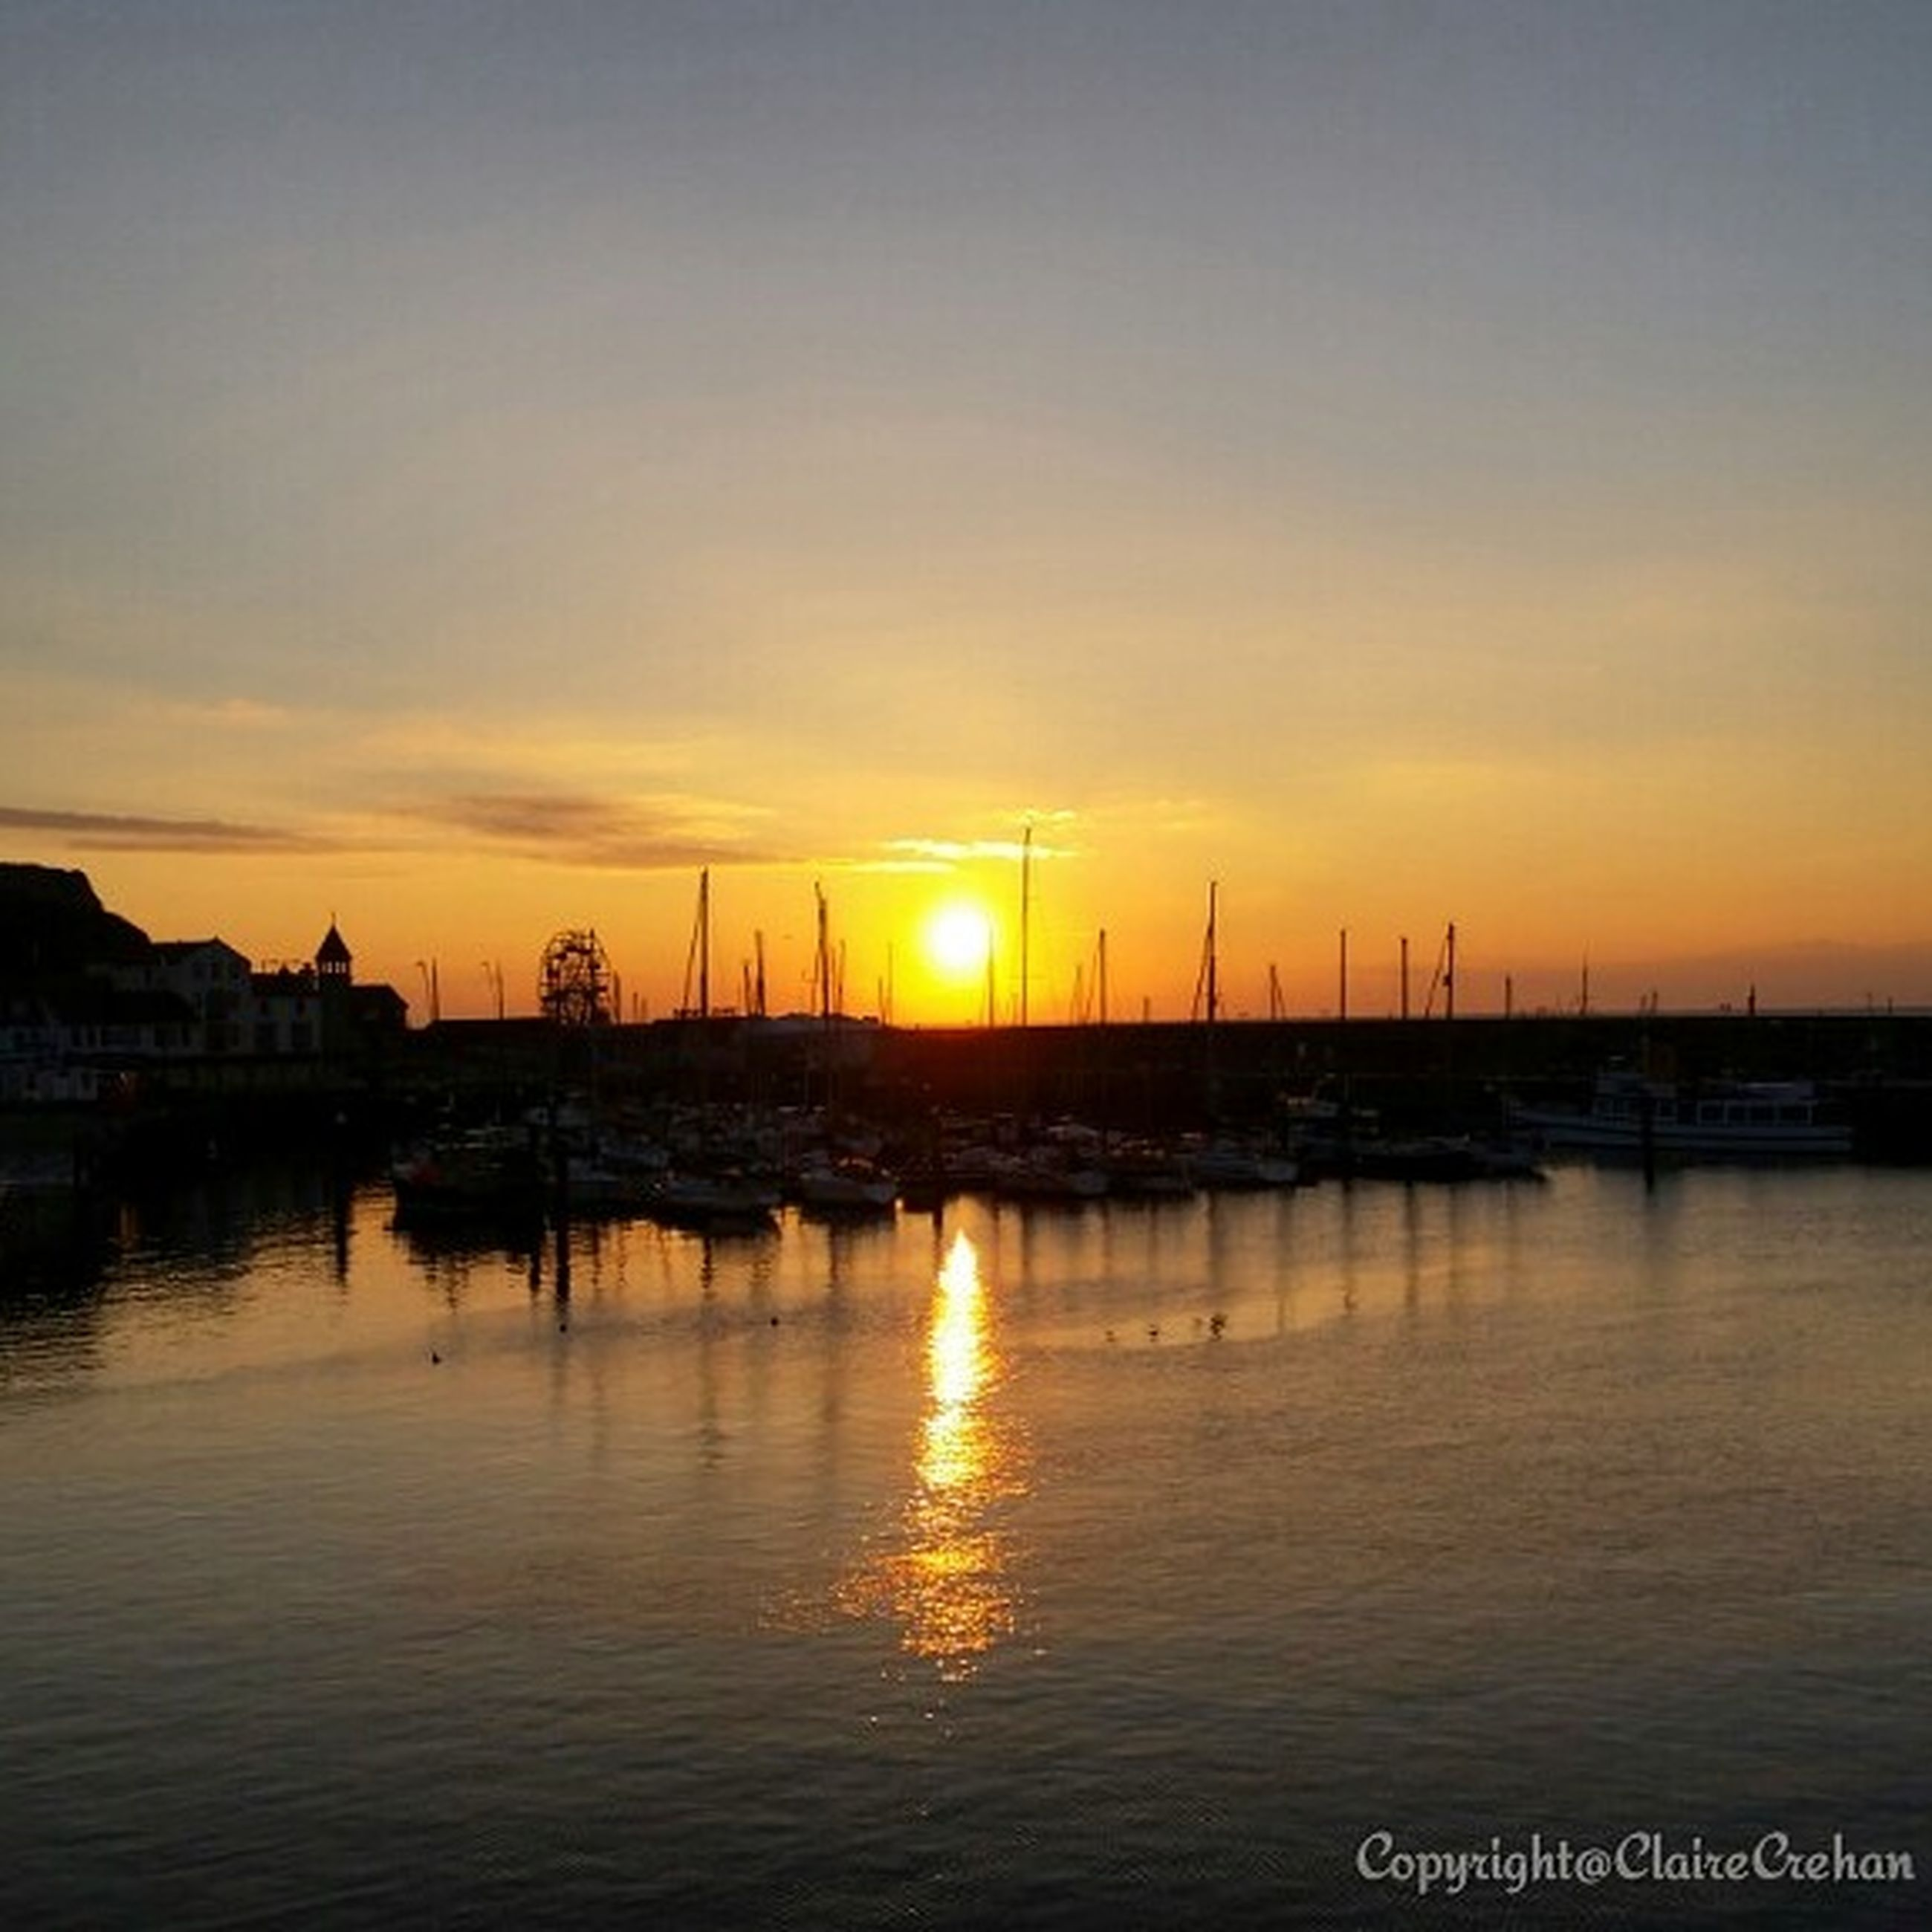 sunset, water, orange color, sun, reflection, tranquil scene, scenics, silhouette, tranquility, beauty in nature, transportation, nautical vessel, waterfront, sea, sky, idyllic, nature, boat, lake, moored